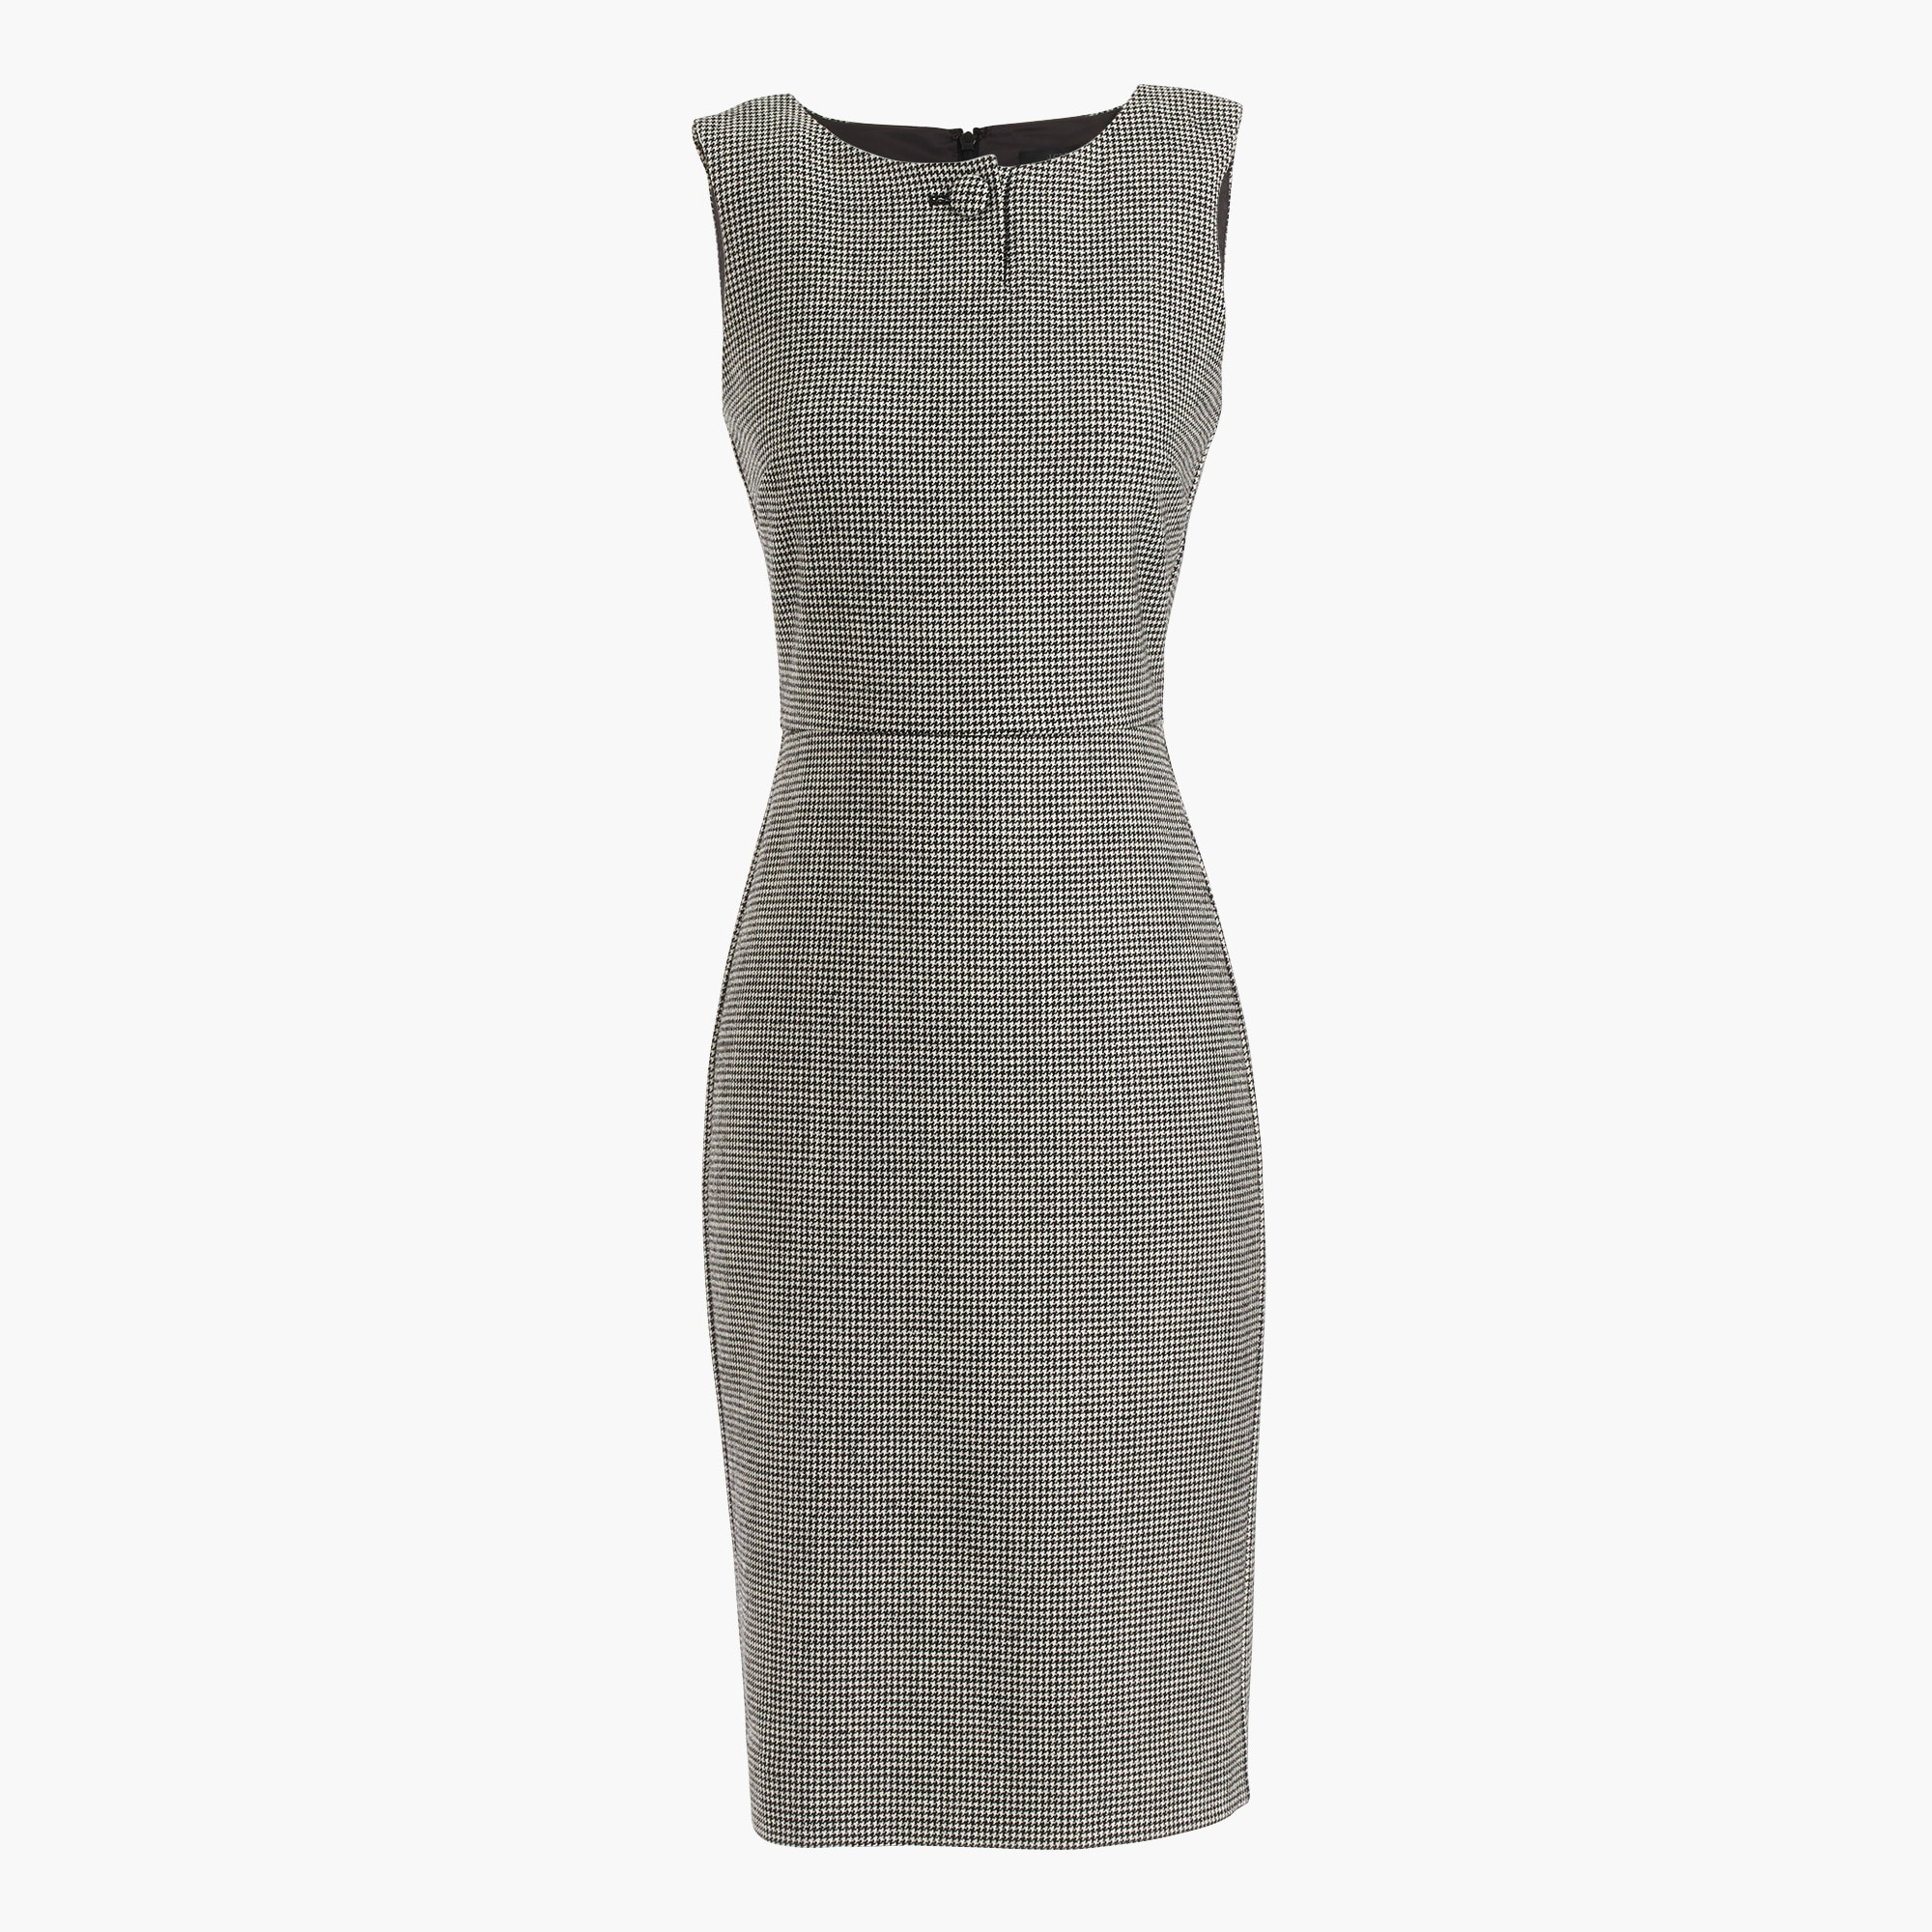 Image 2 for Houndstooth sheath dress